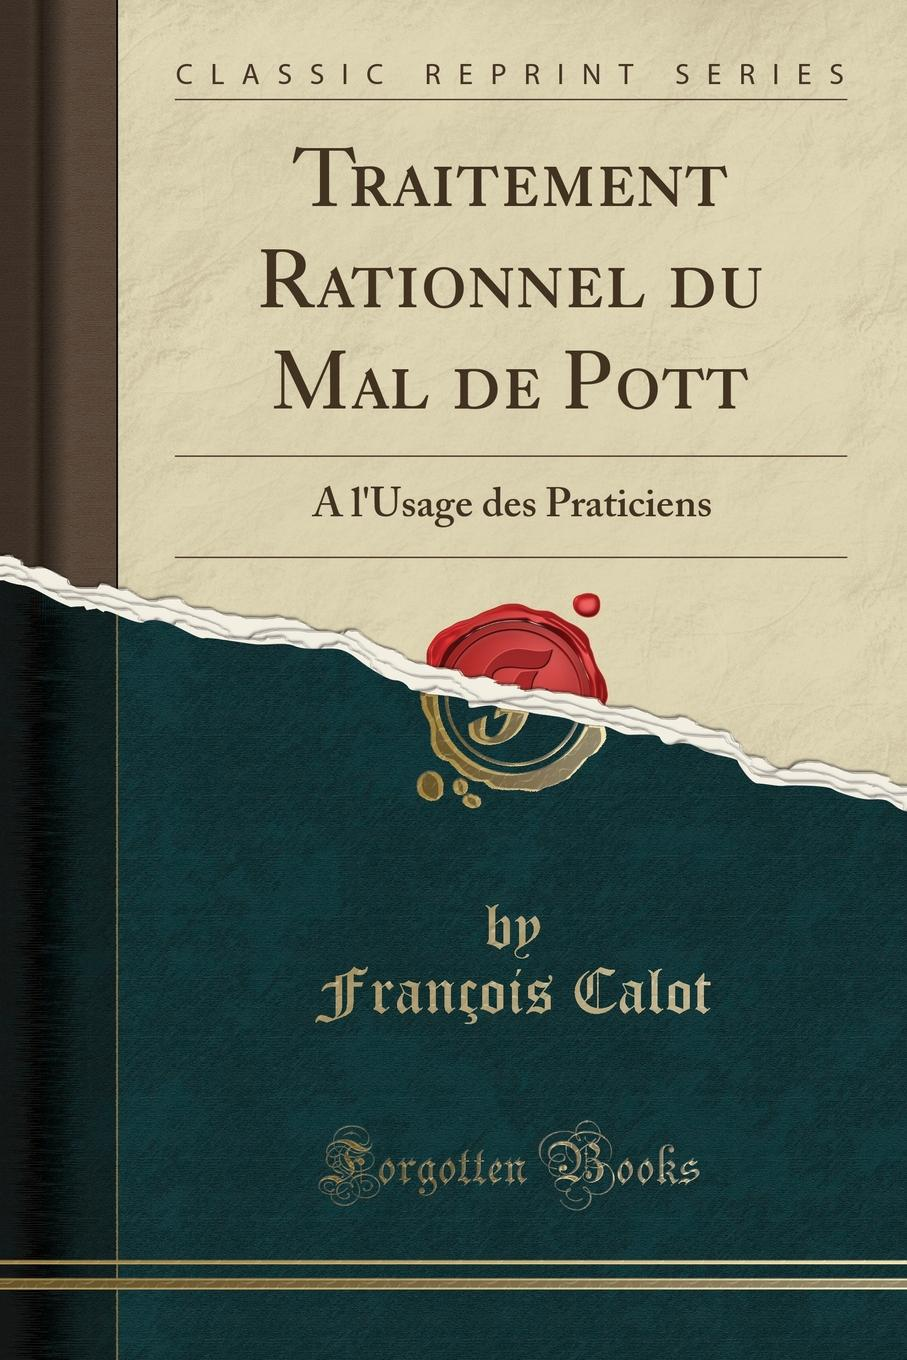 François Calot Traitement Rationnel du Mal de Pott. A l.Usage des Praticiens (Classic Reprint) françois calot traitement rationnel du mal de pott a l usage des praticiens